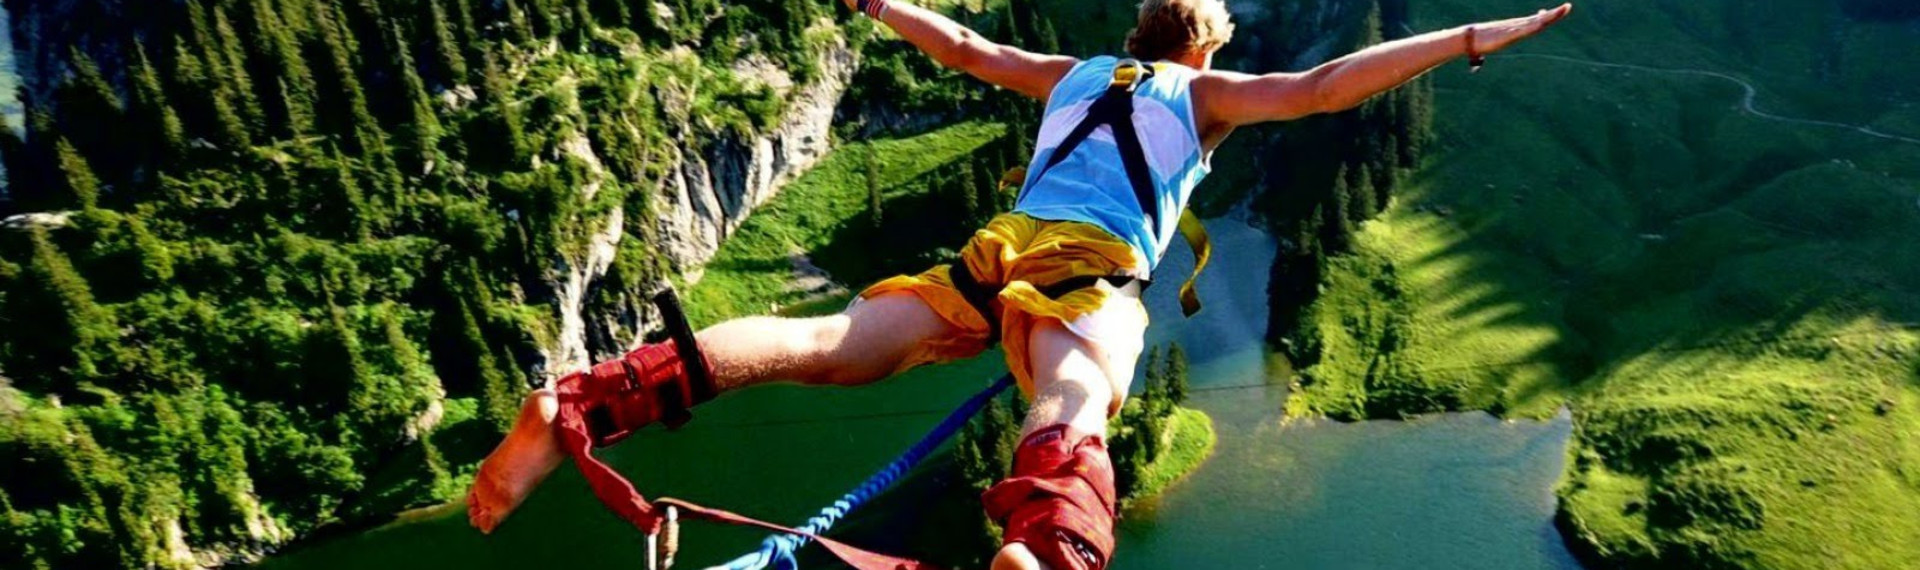 Bungee Jumping Riga | Pissup Tours